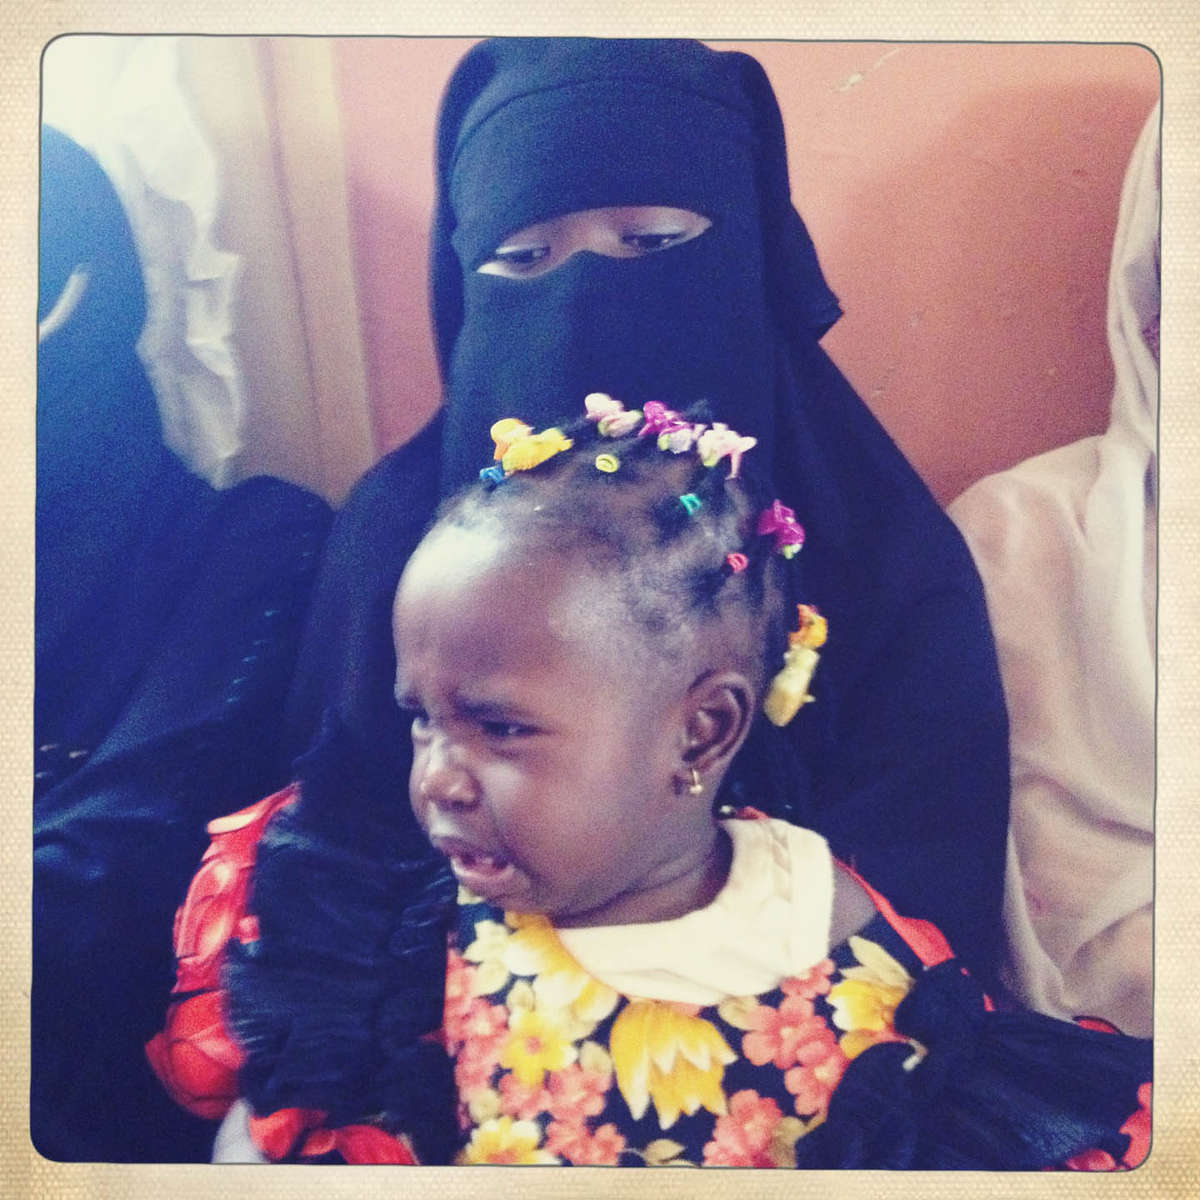 Tears and abayas. Joe, Central Nigeria. April 2013.